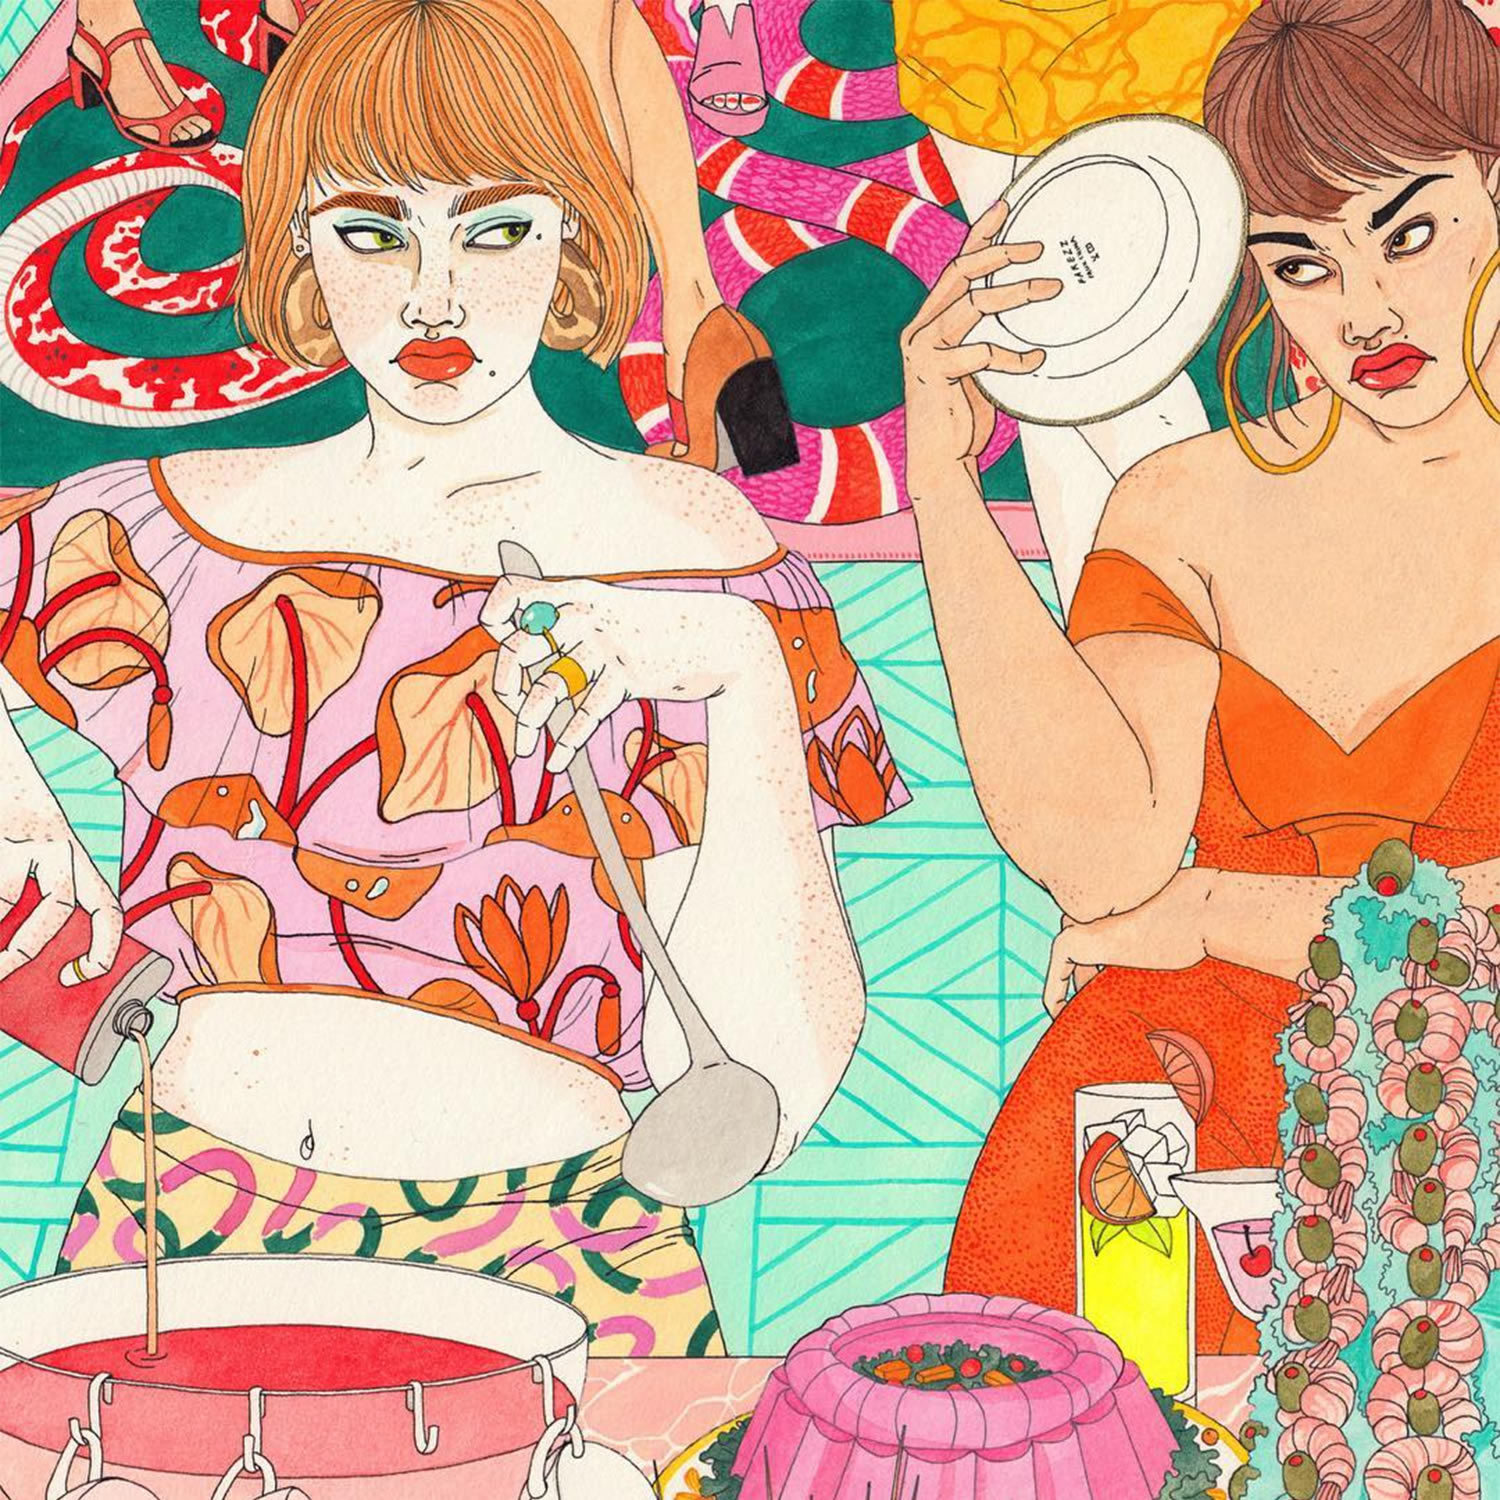 party, dinner, posing and making faces, illustration